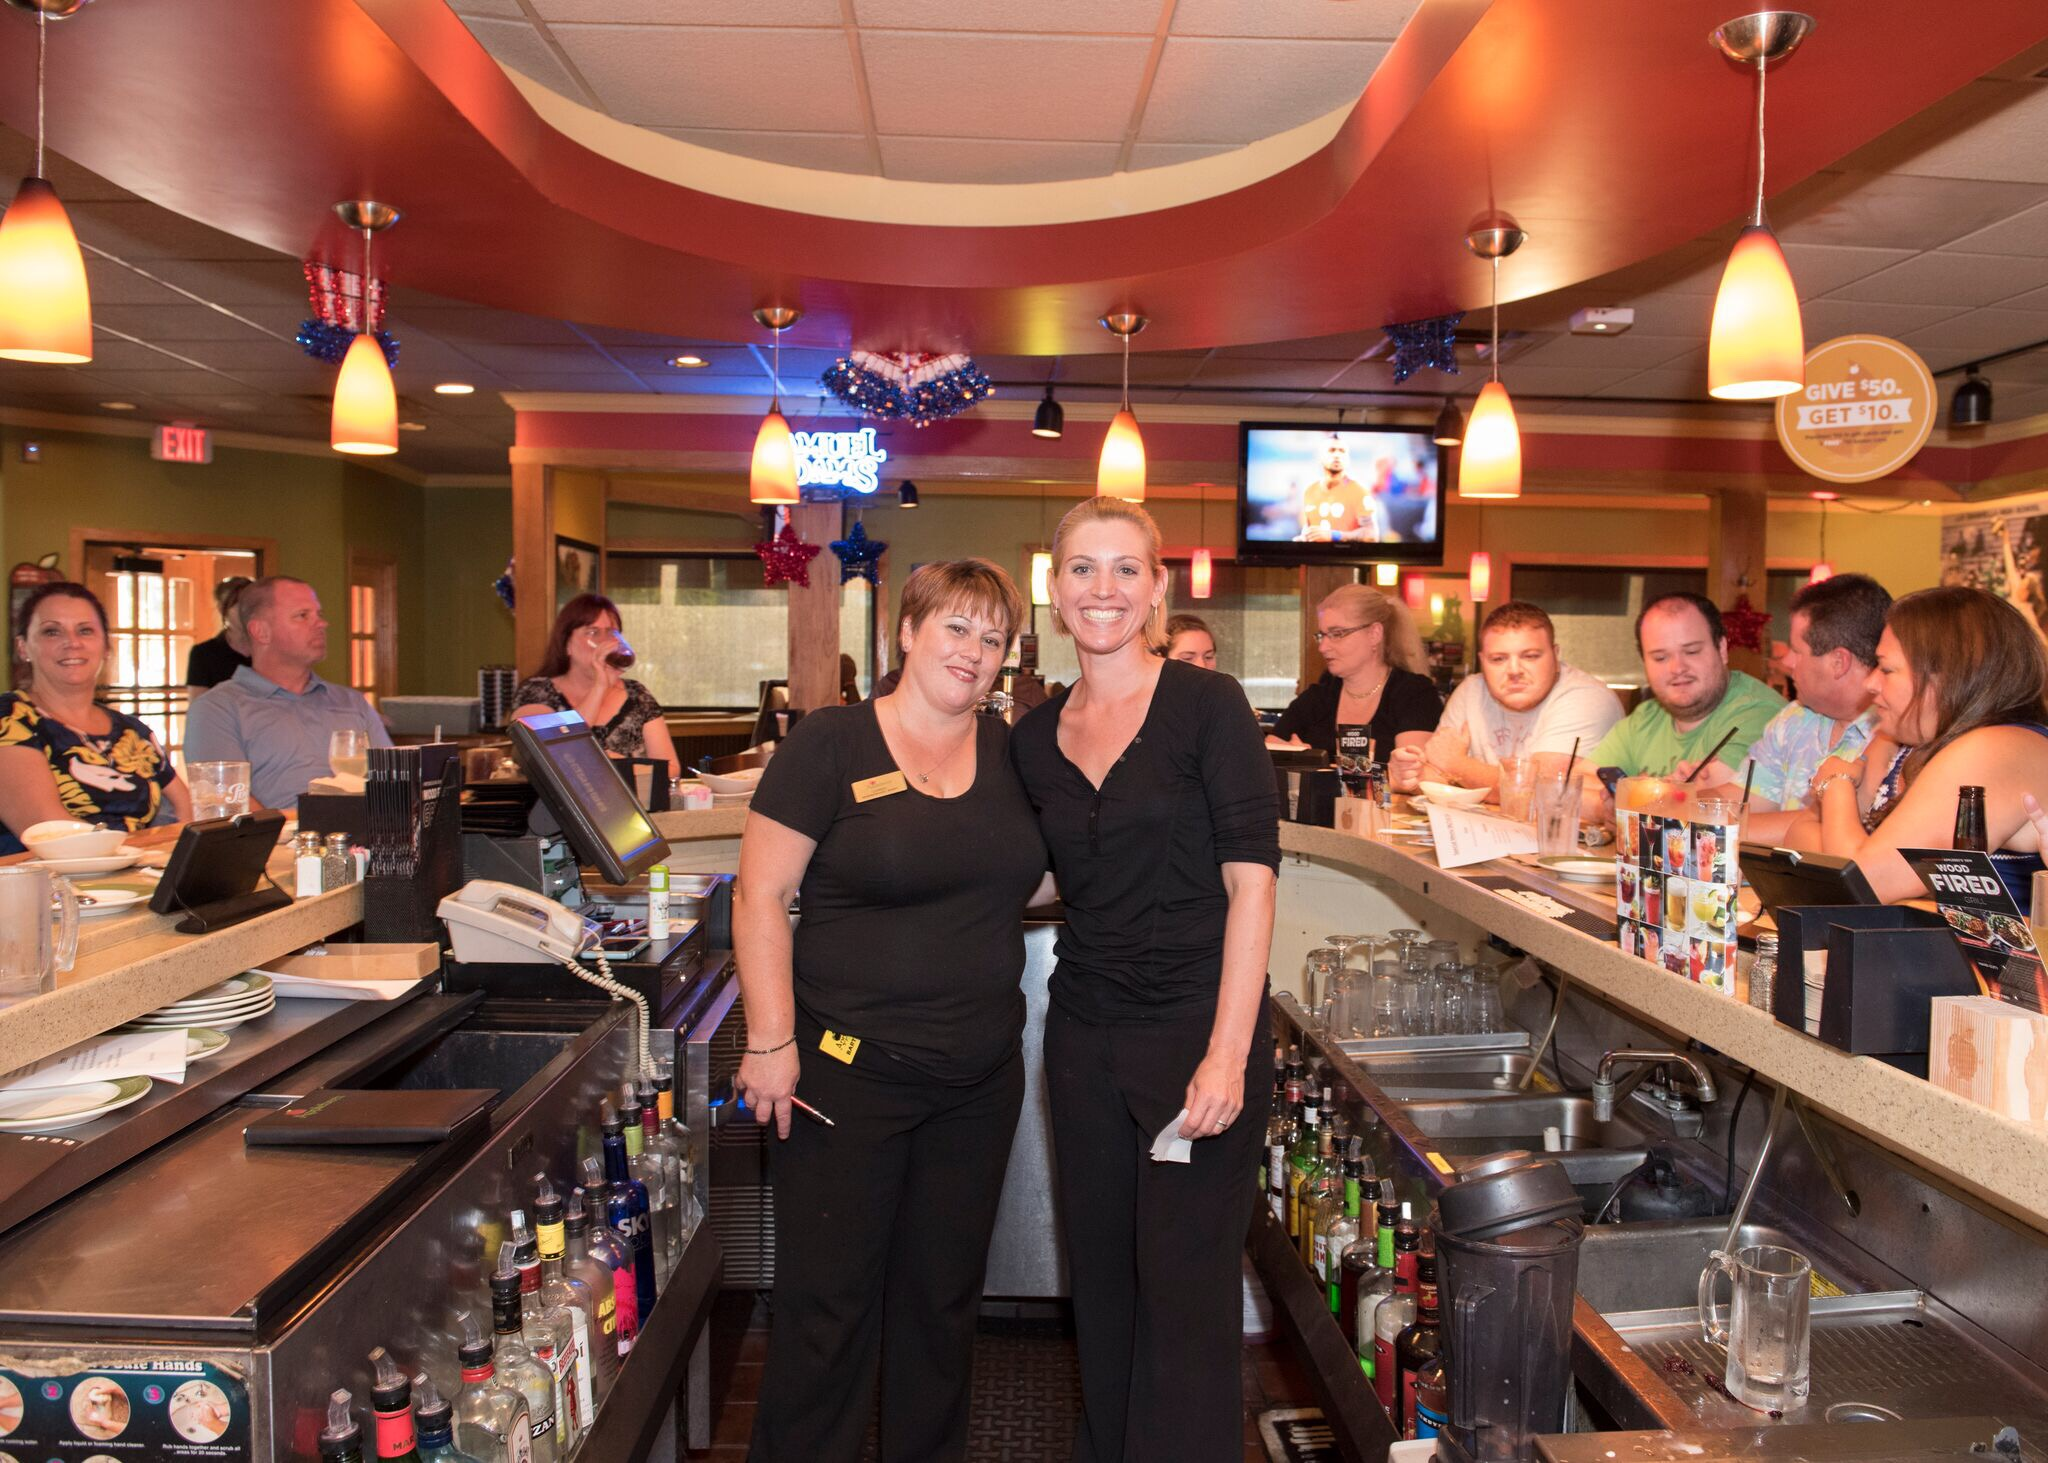 Our Servers/Bartenders and my friends Candy and Jaci. Welcome To Dining With Dan I Cook.